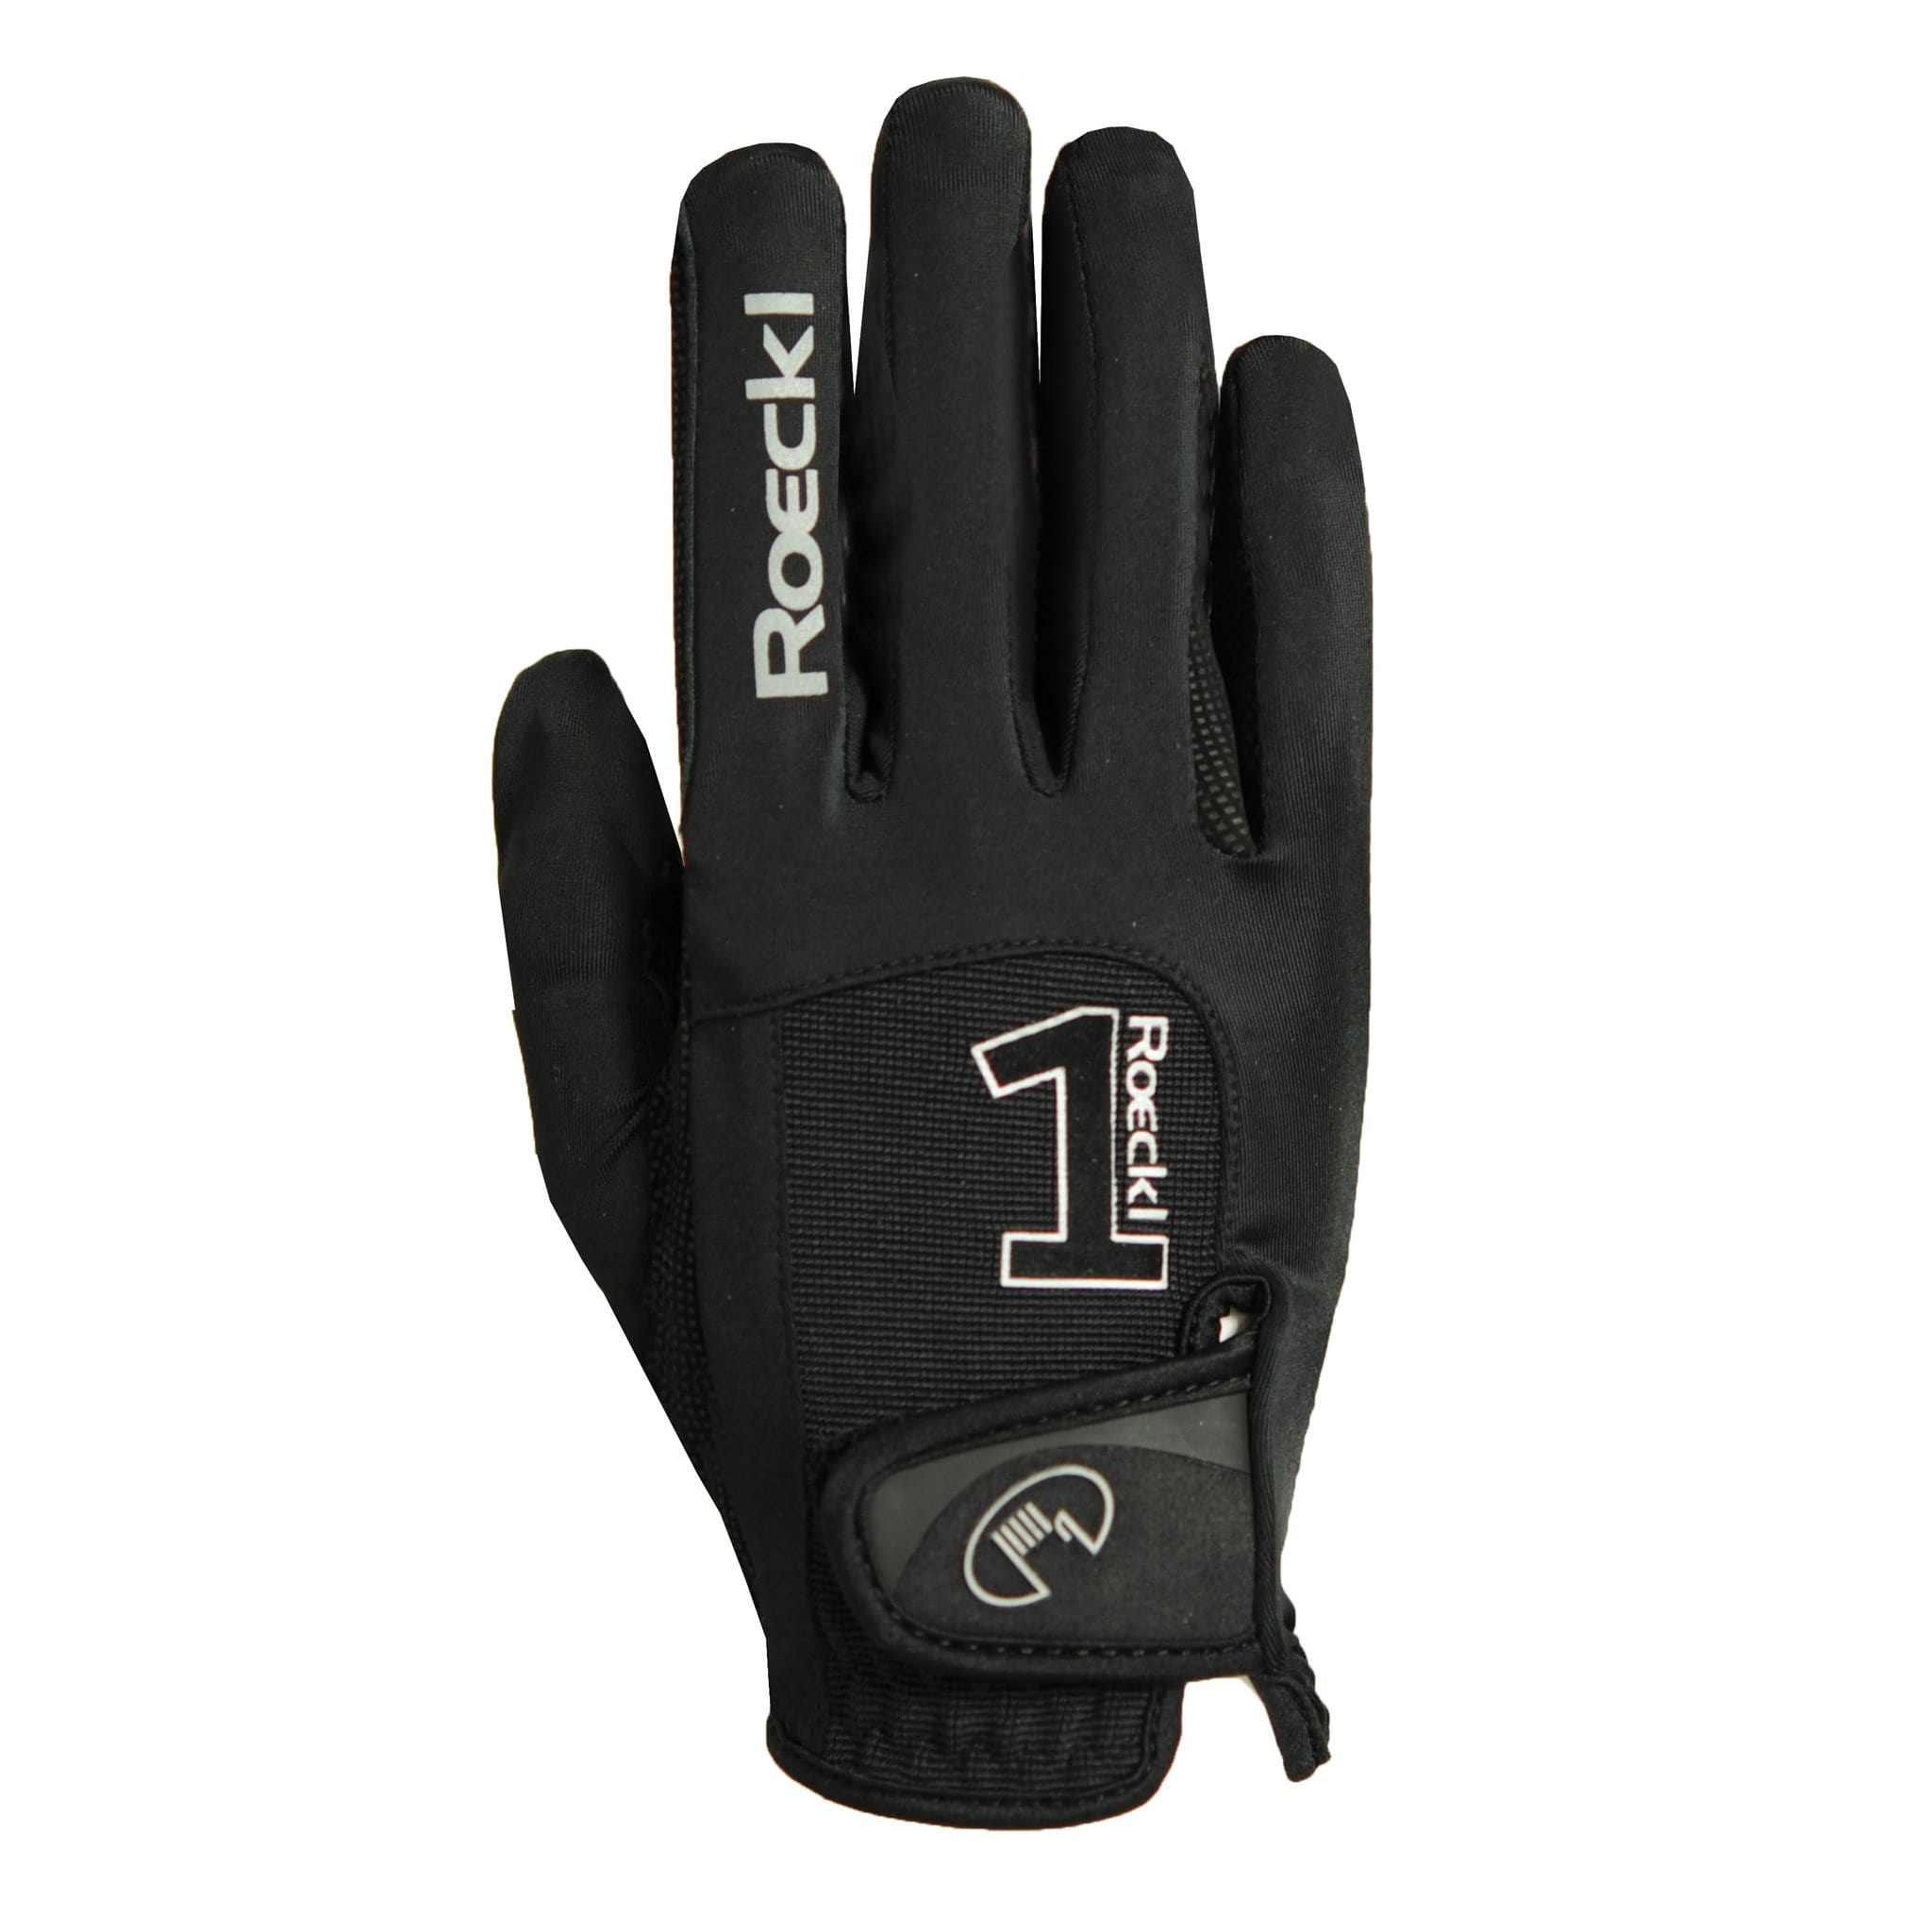 Roeckl Mansfield Gloves Black 3301-280-000